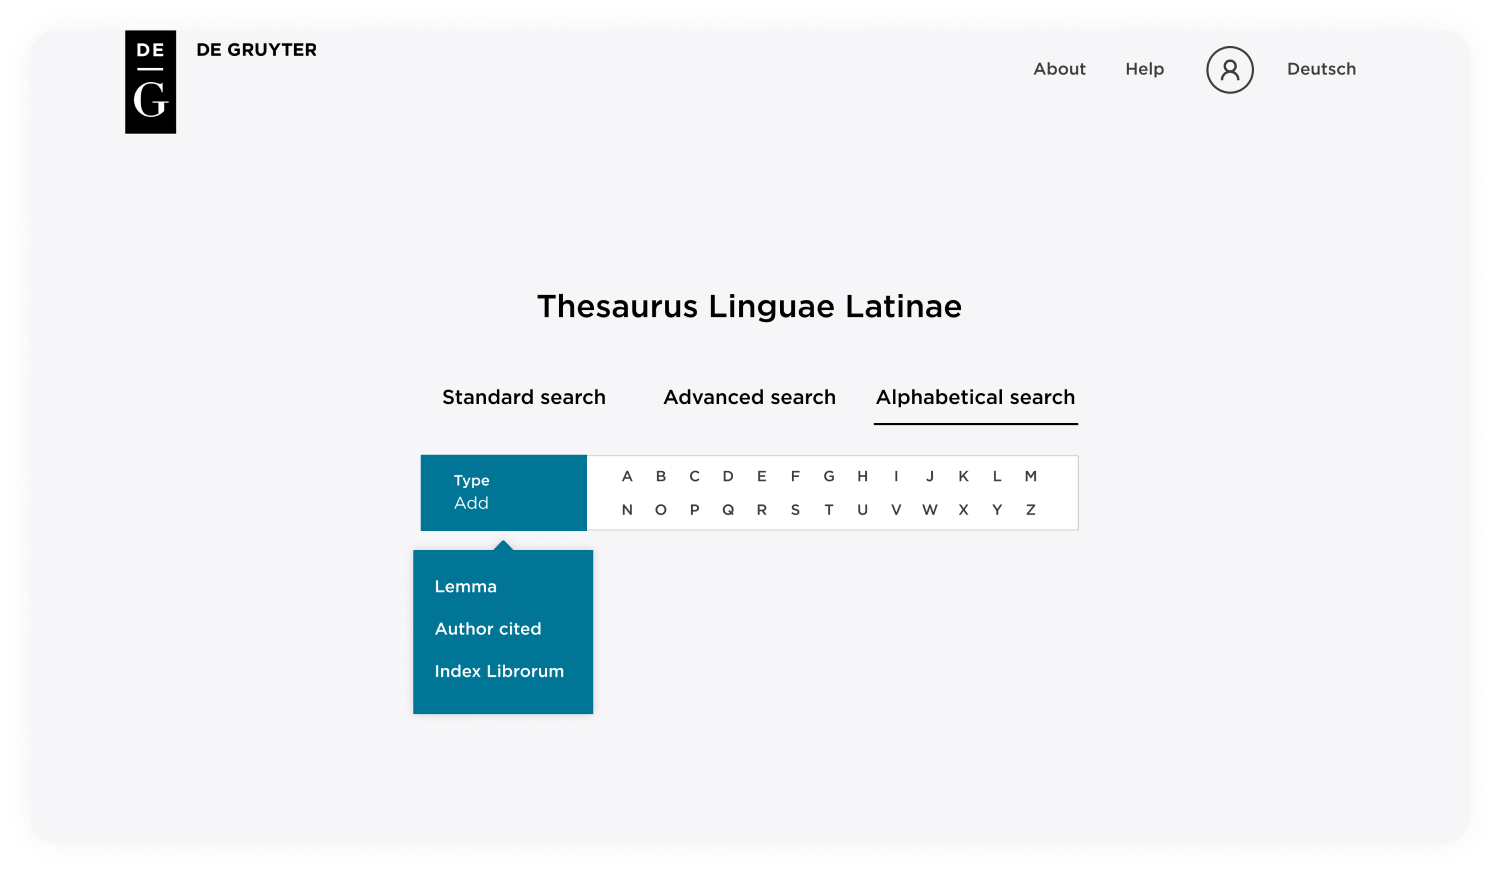 We designed in multi-layered ways to conduct a search and made these options accessible from every page.